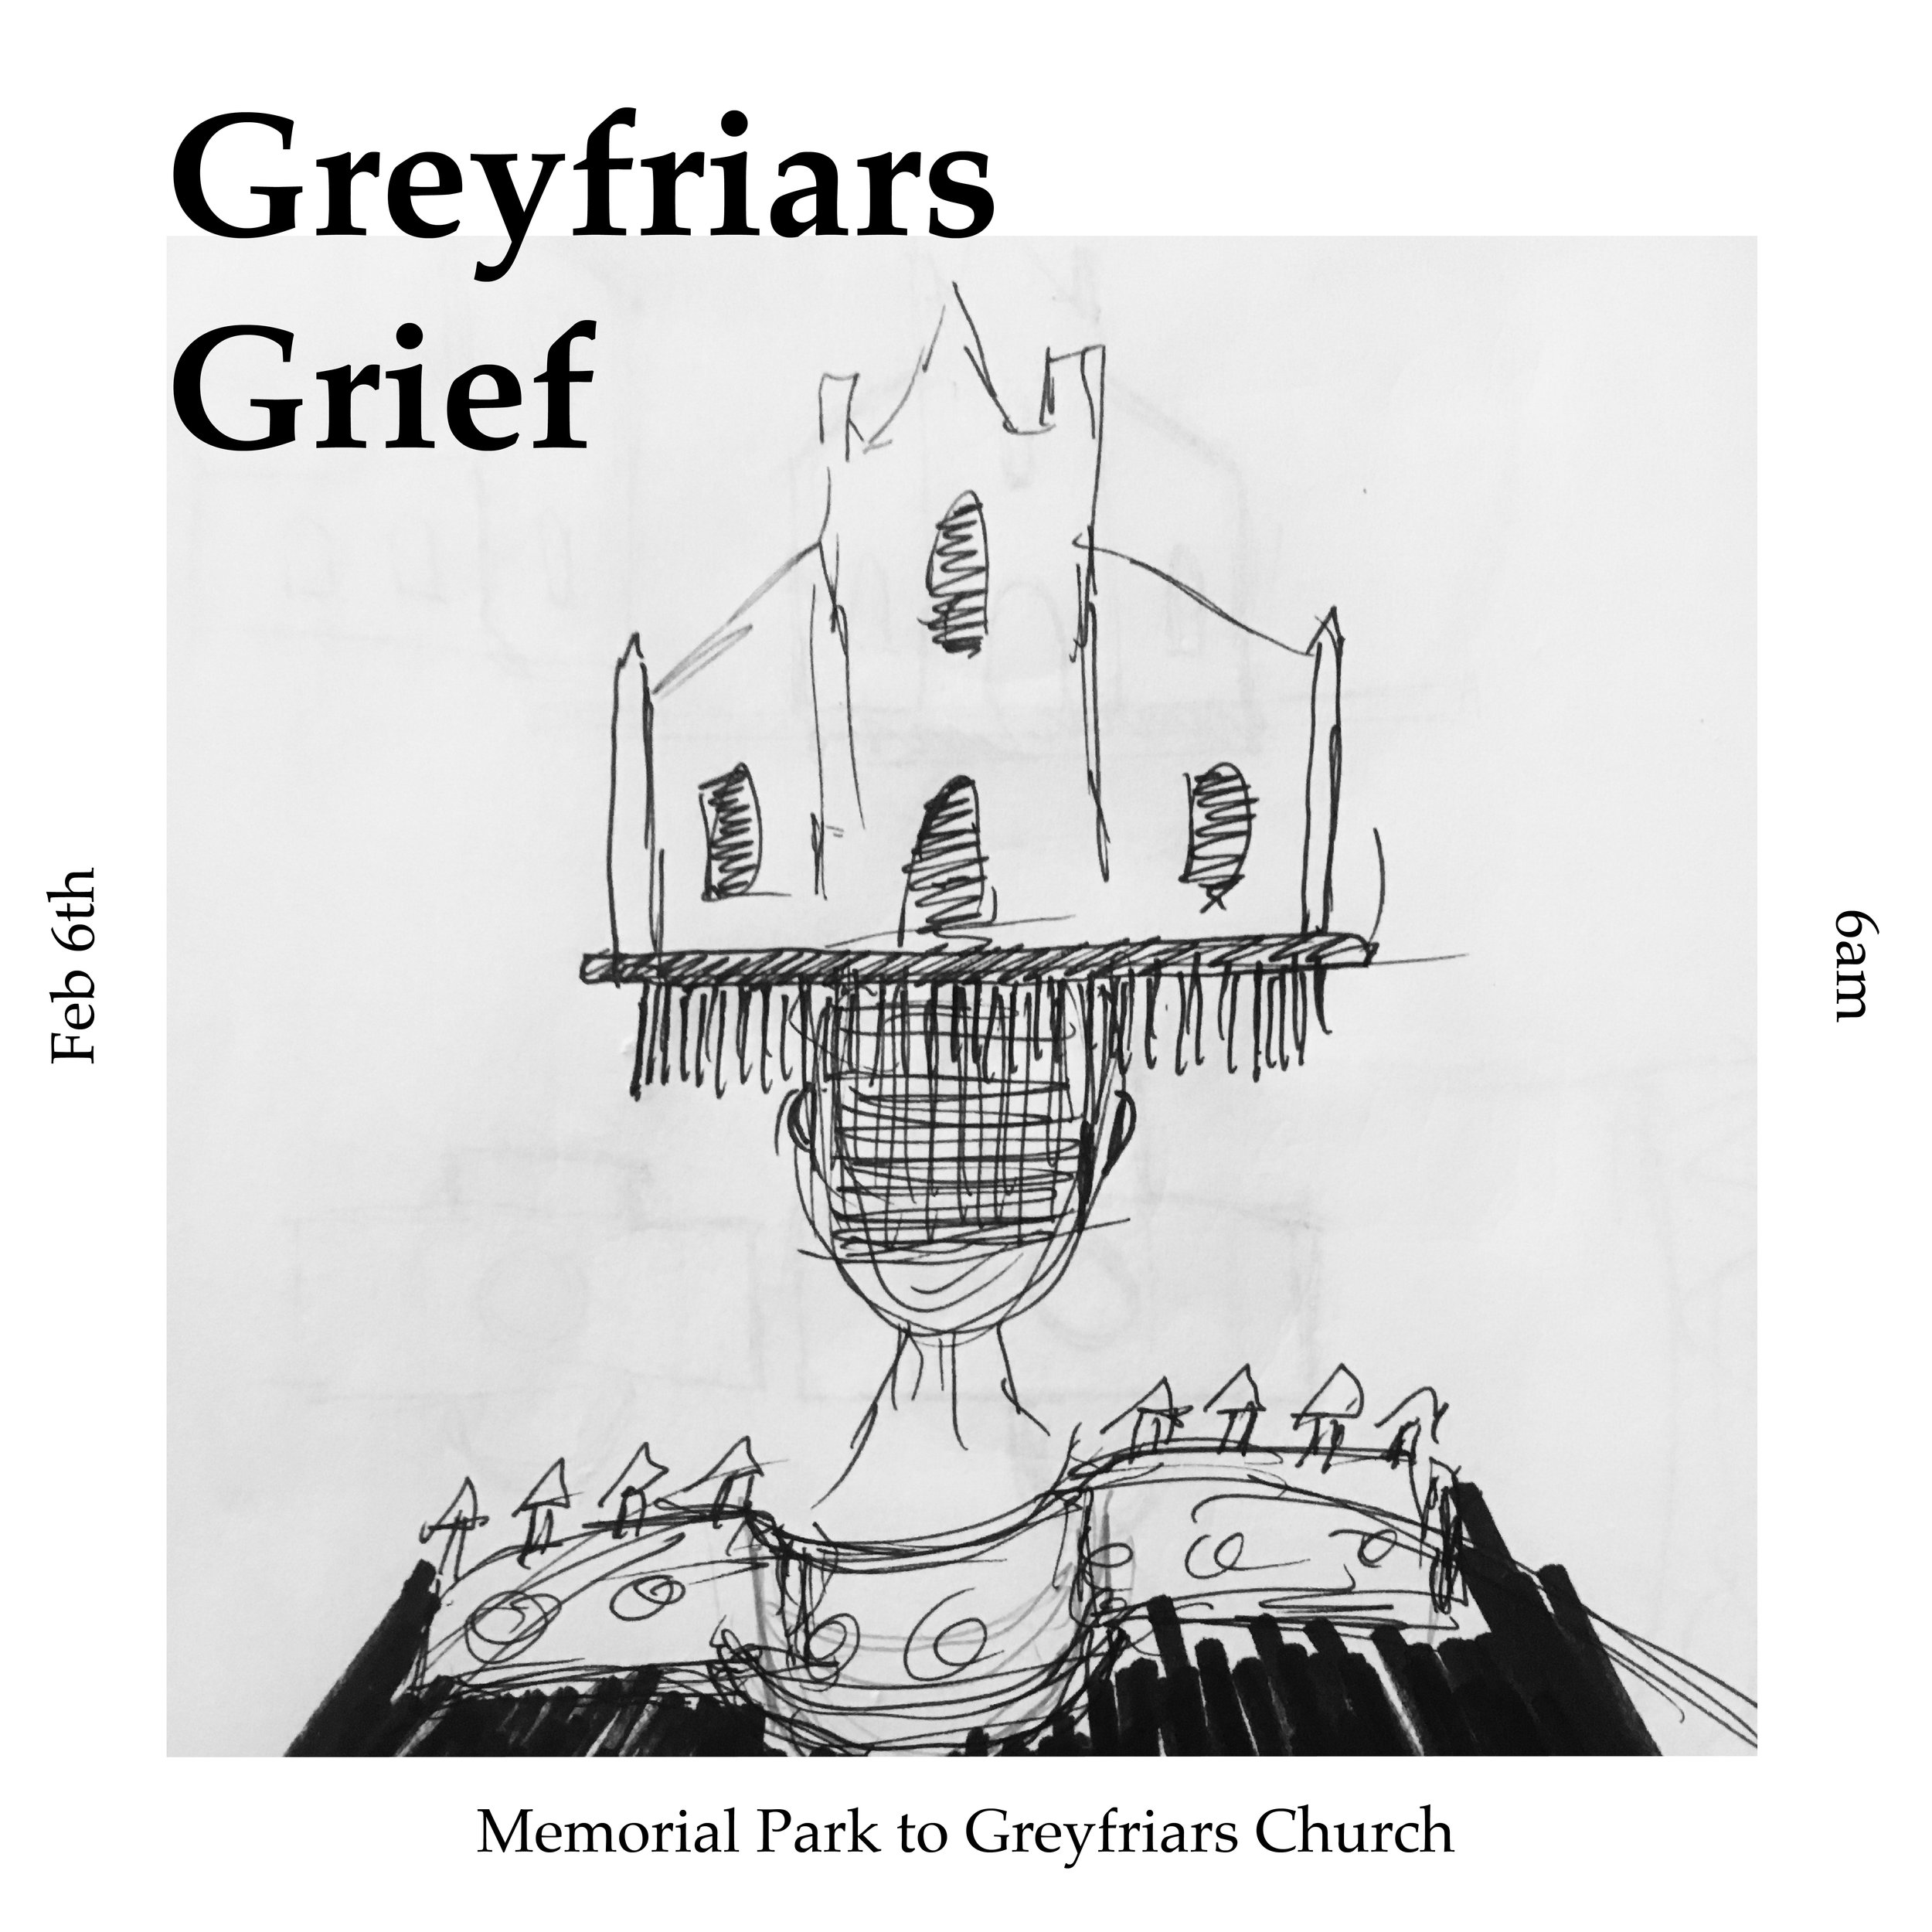 Invitation for Greyfriars Grief